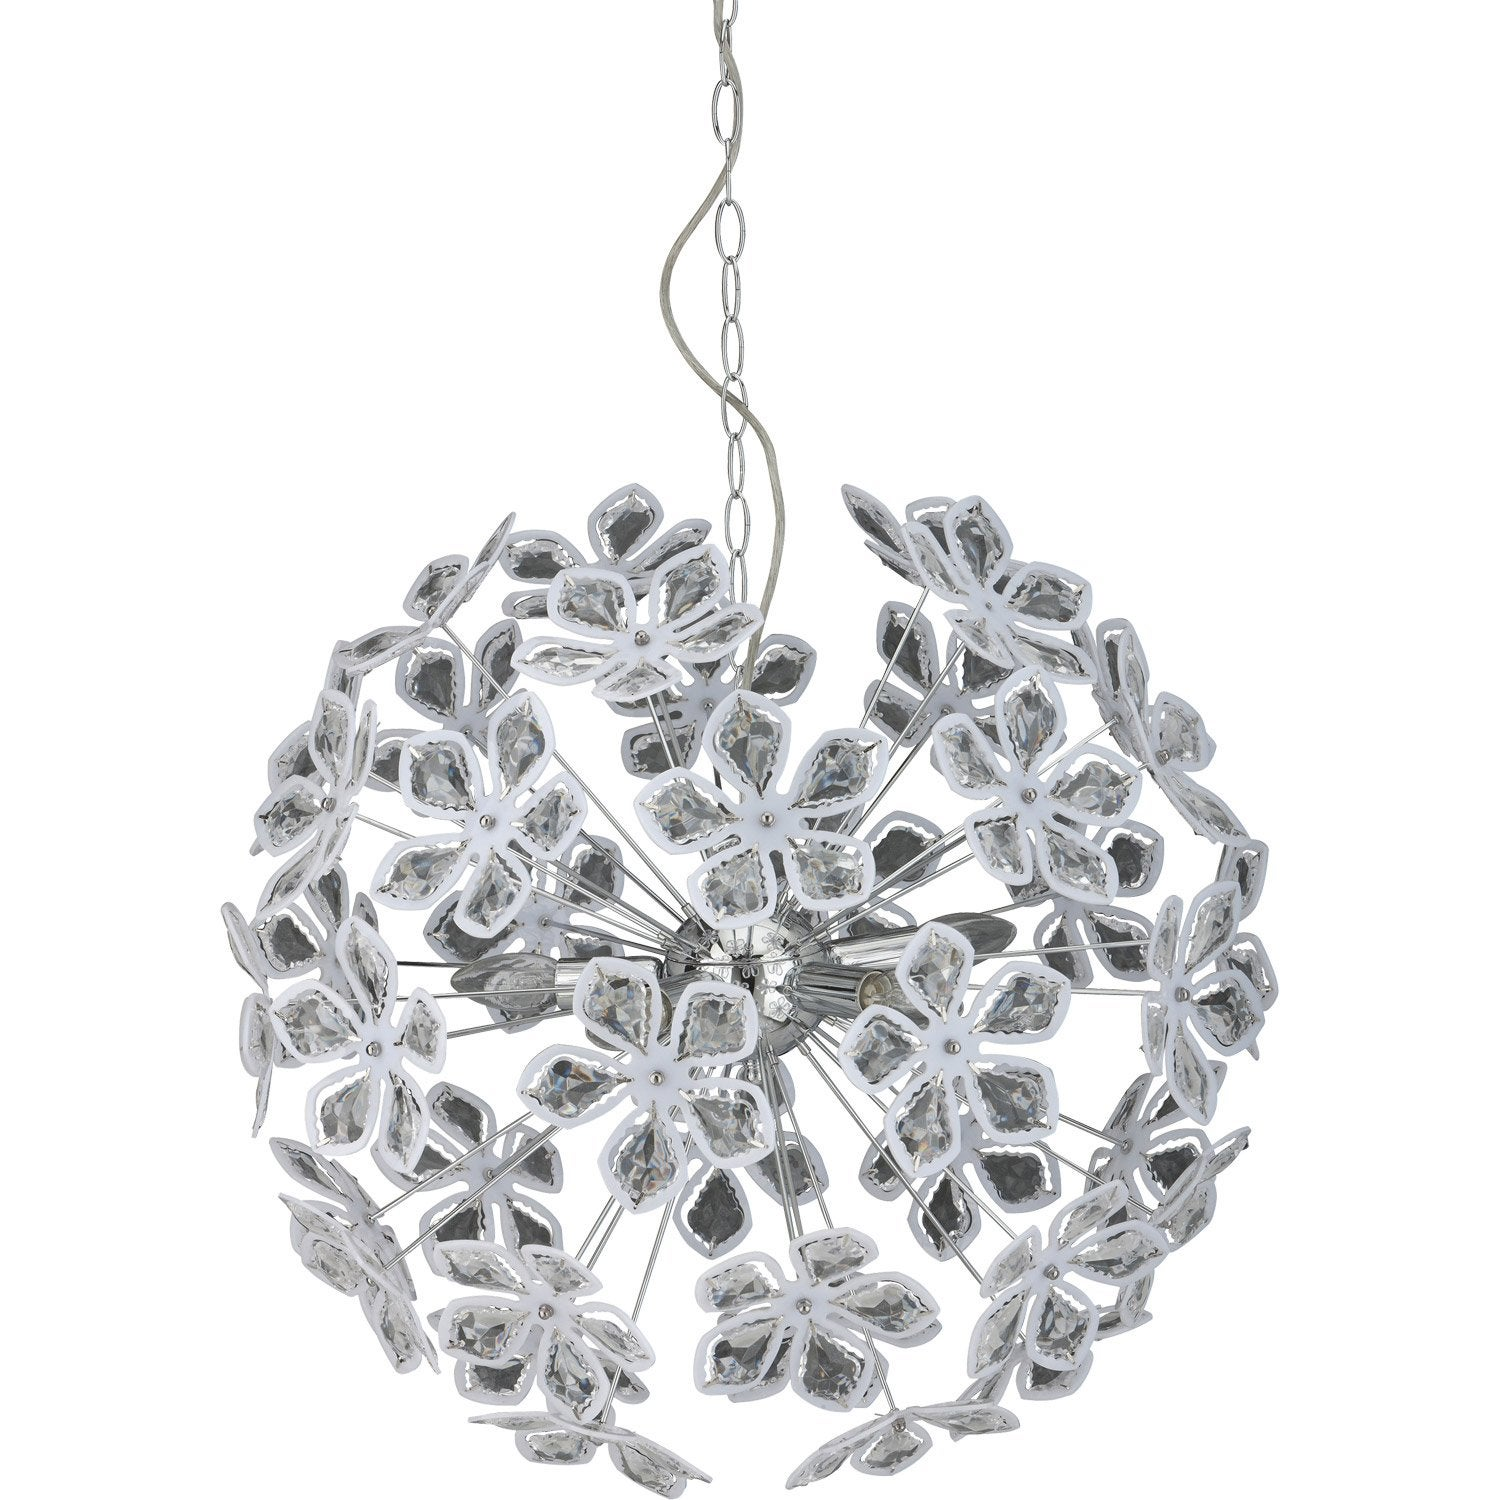 Suspension moderne fleurs m tal chrom 5 x 40 w sampa helios leroy merlin - Suspensions leroy merlin ...